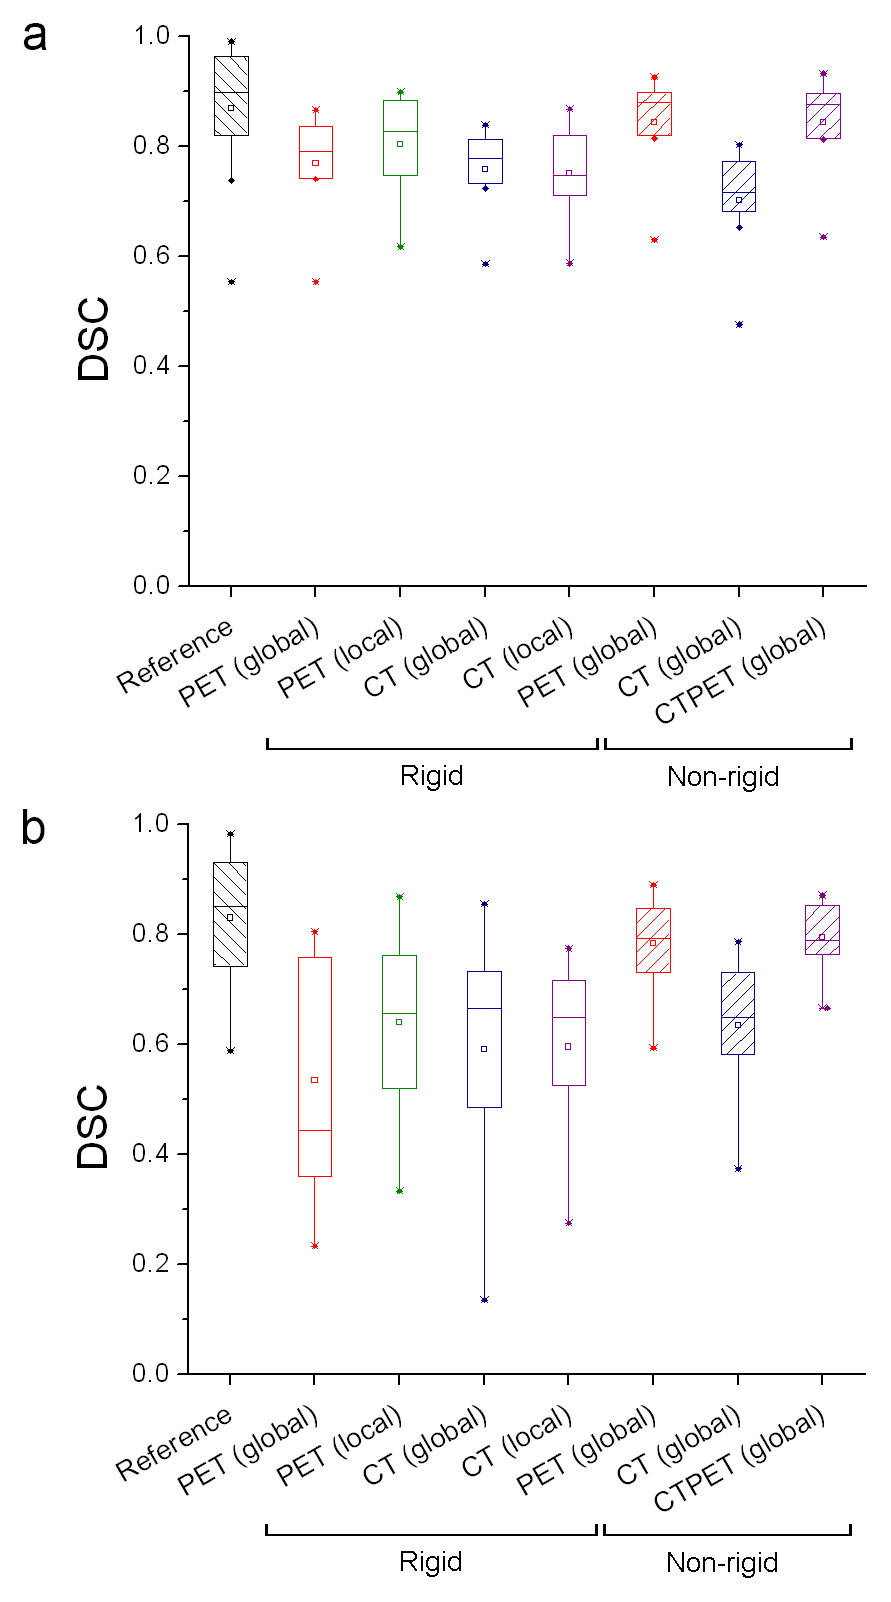 http://static-content.springer.com/image/art%3A10.1186%2F2191-219X-2-10/MediaObjects/13550_2012_Article_50_Fig4_HTML.jpg